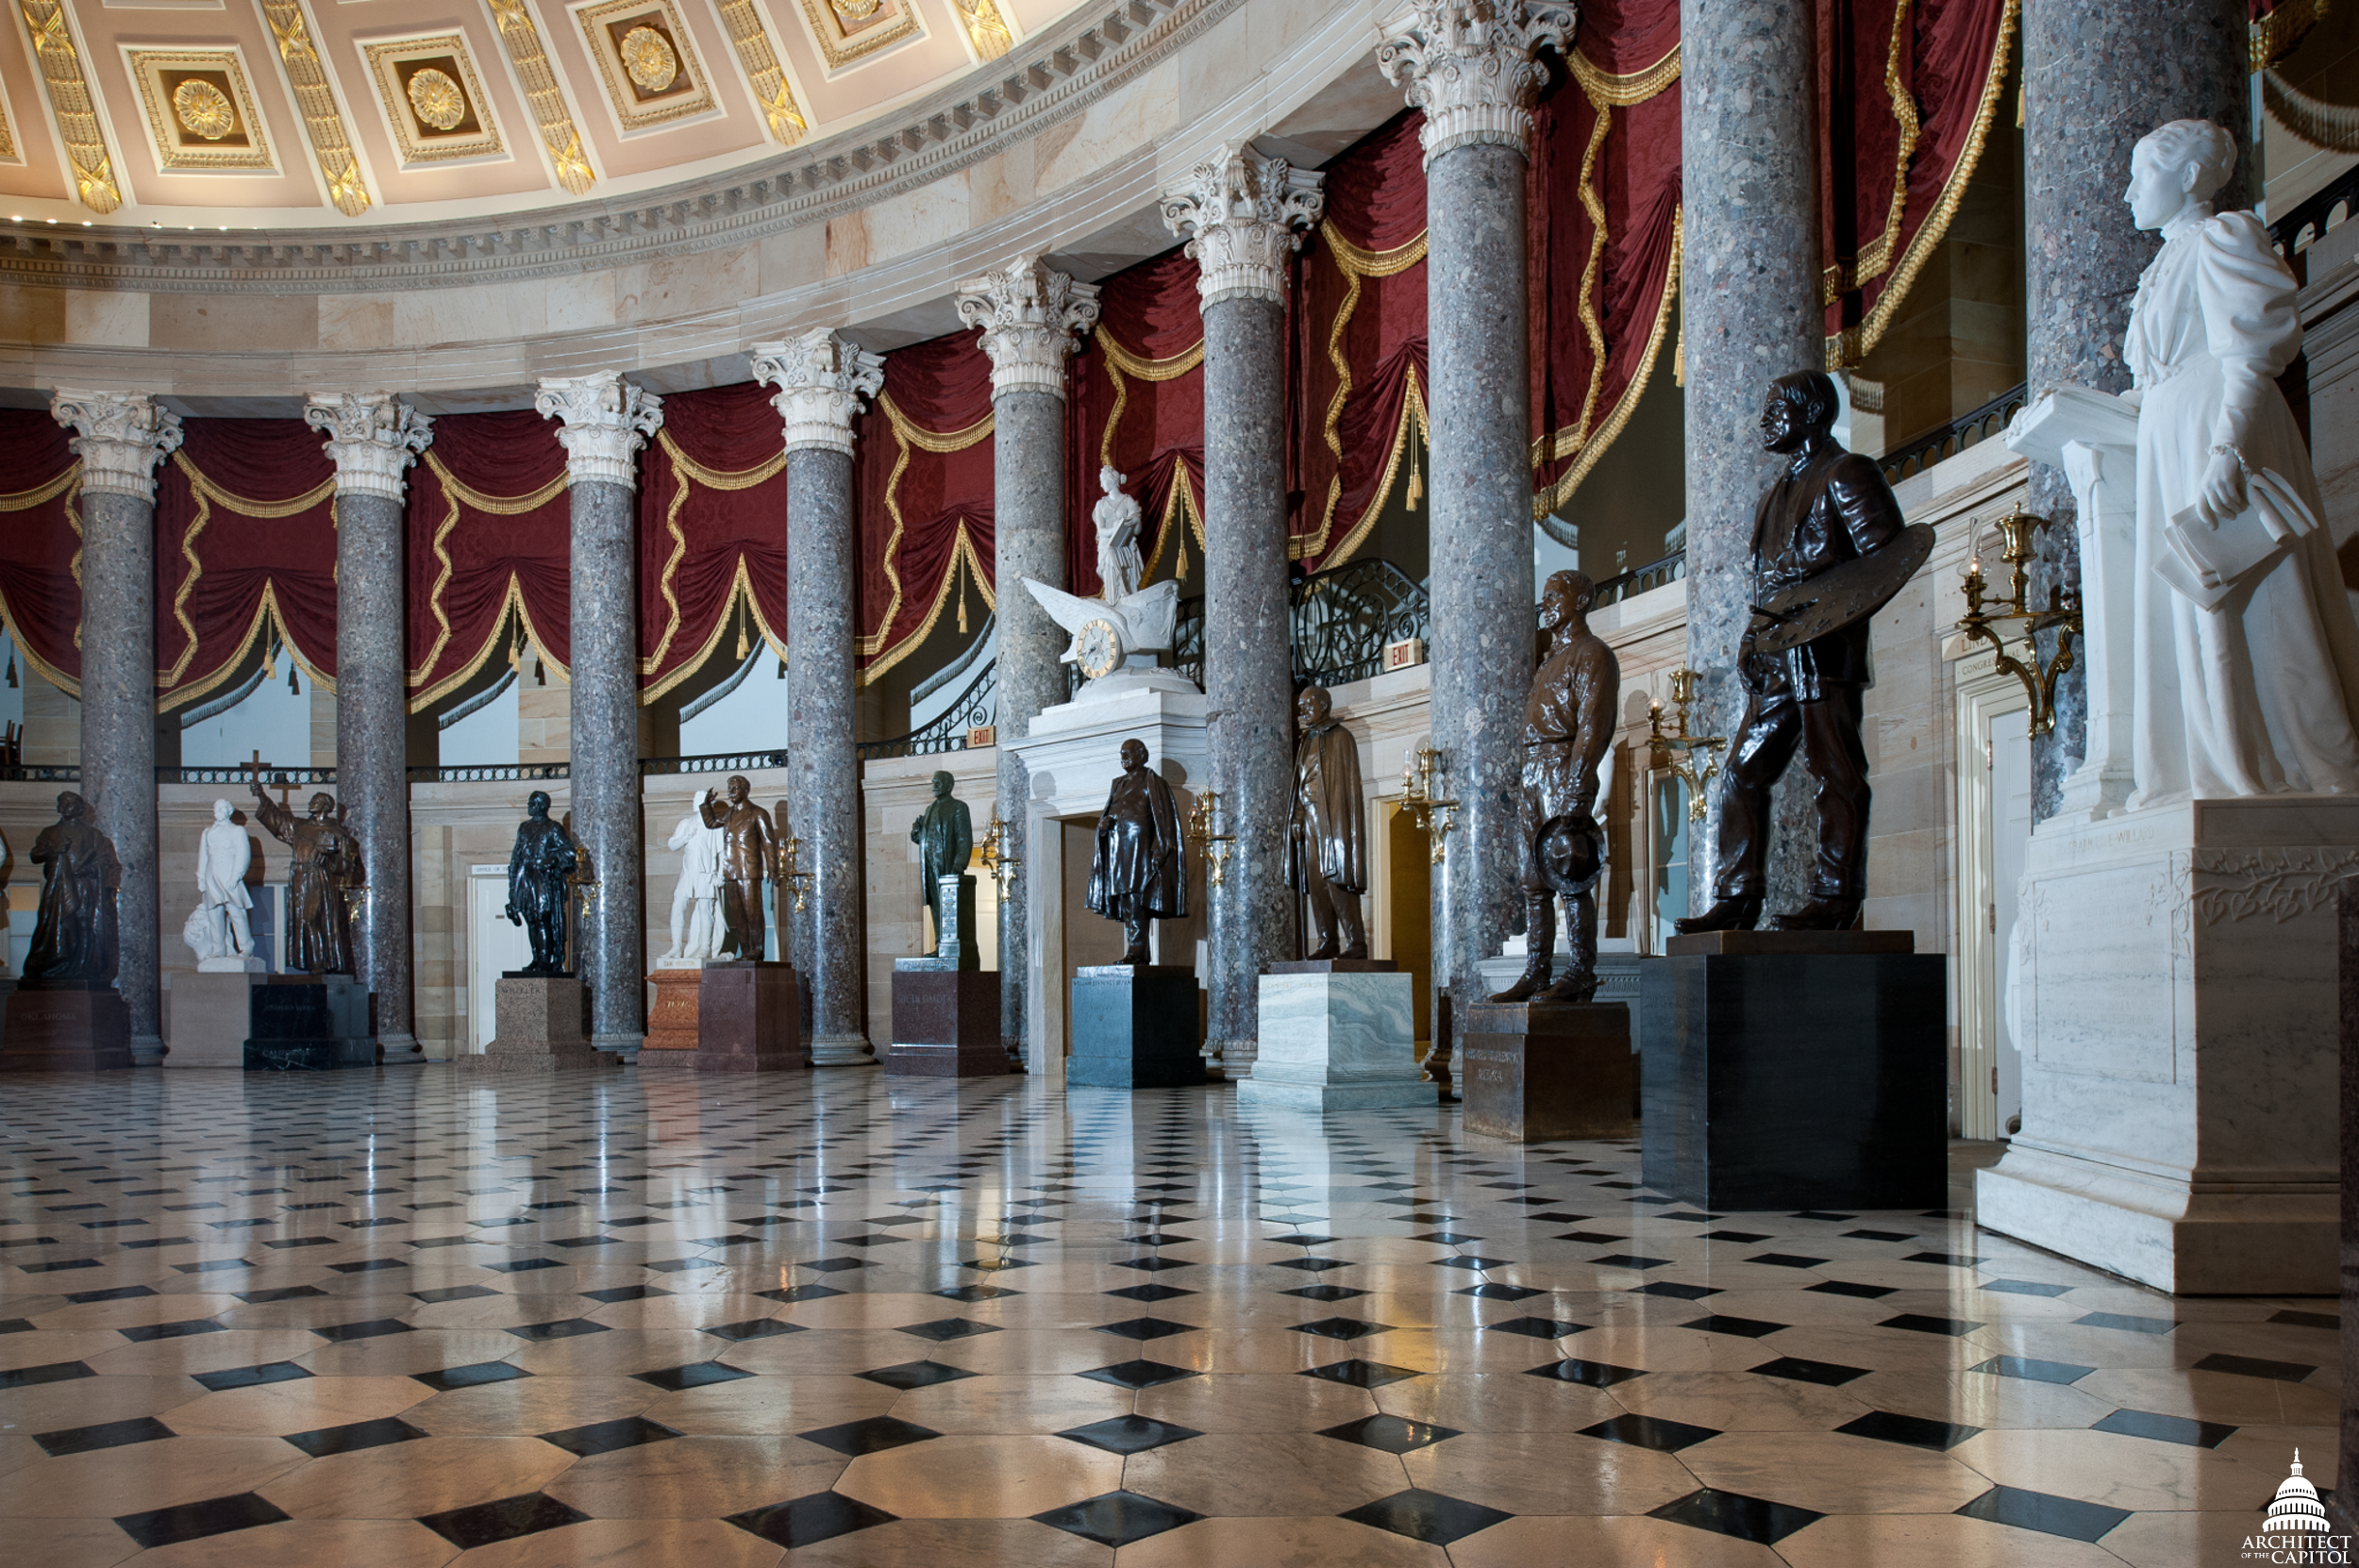 About The National Statuary Hall Collection Architect Of